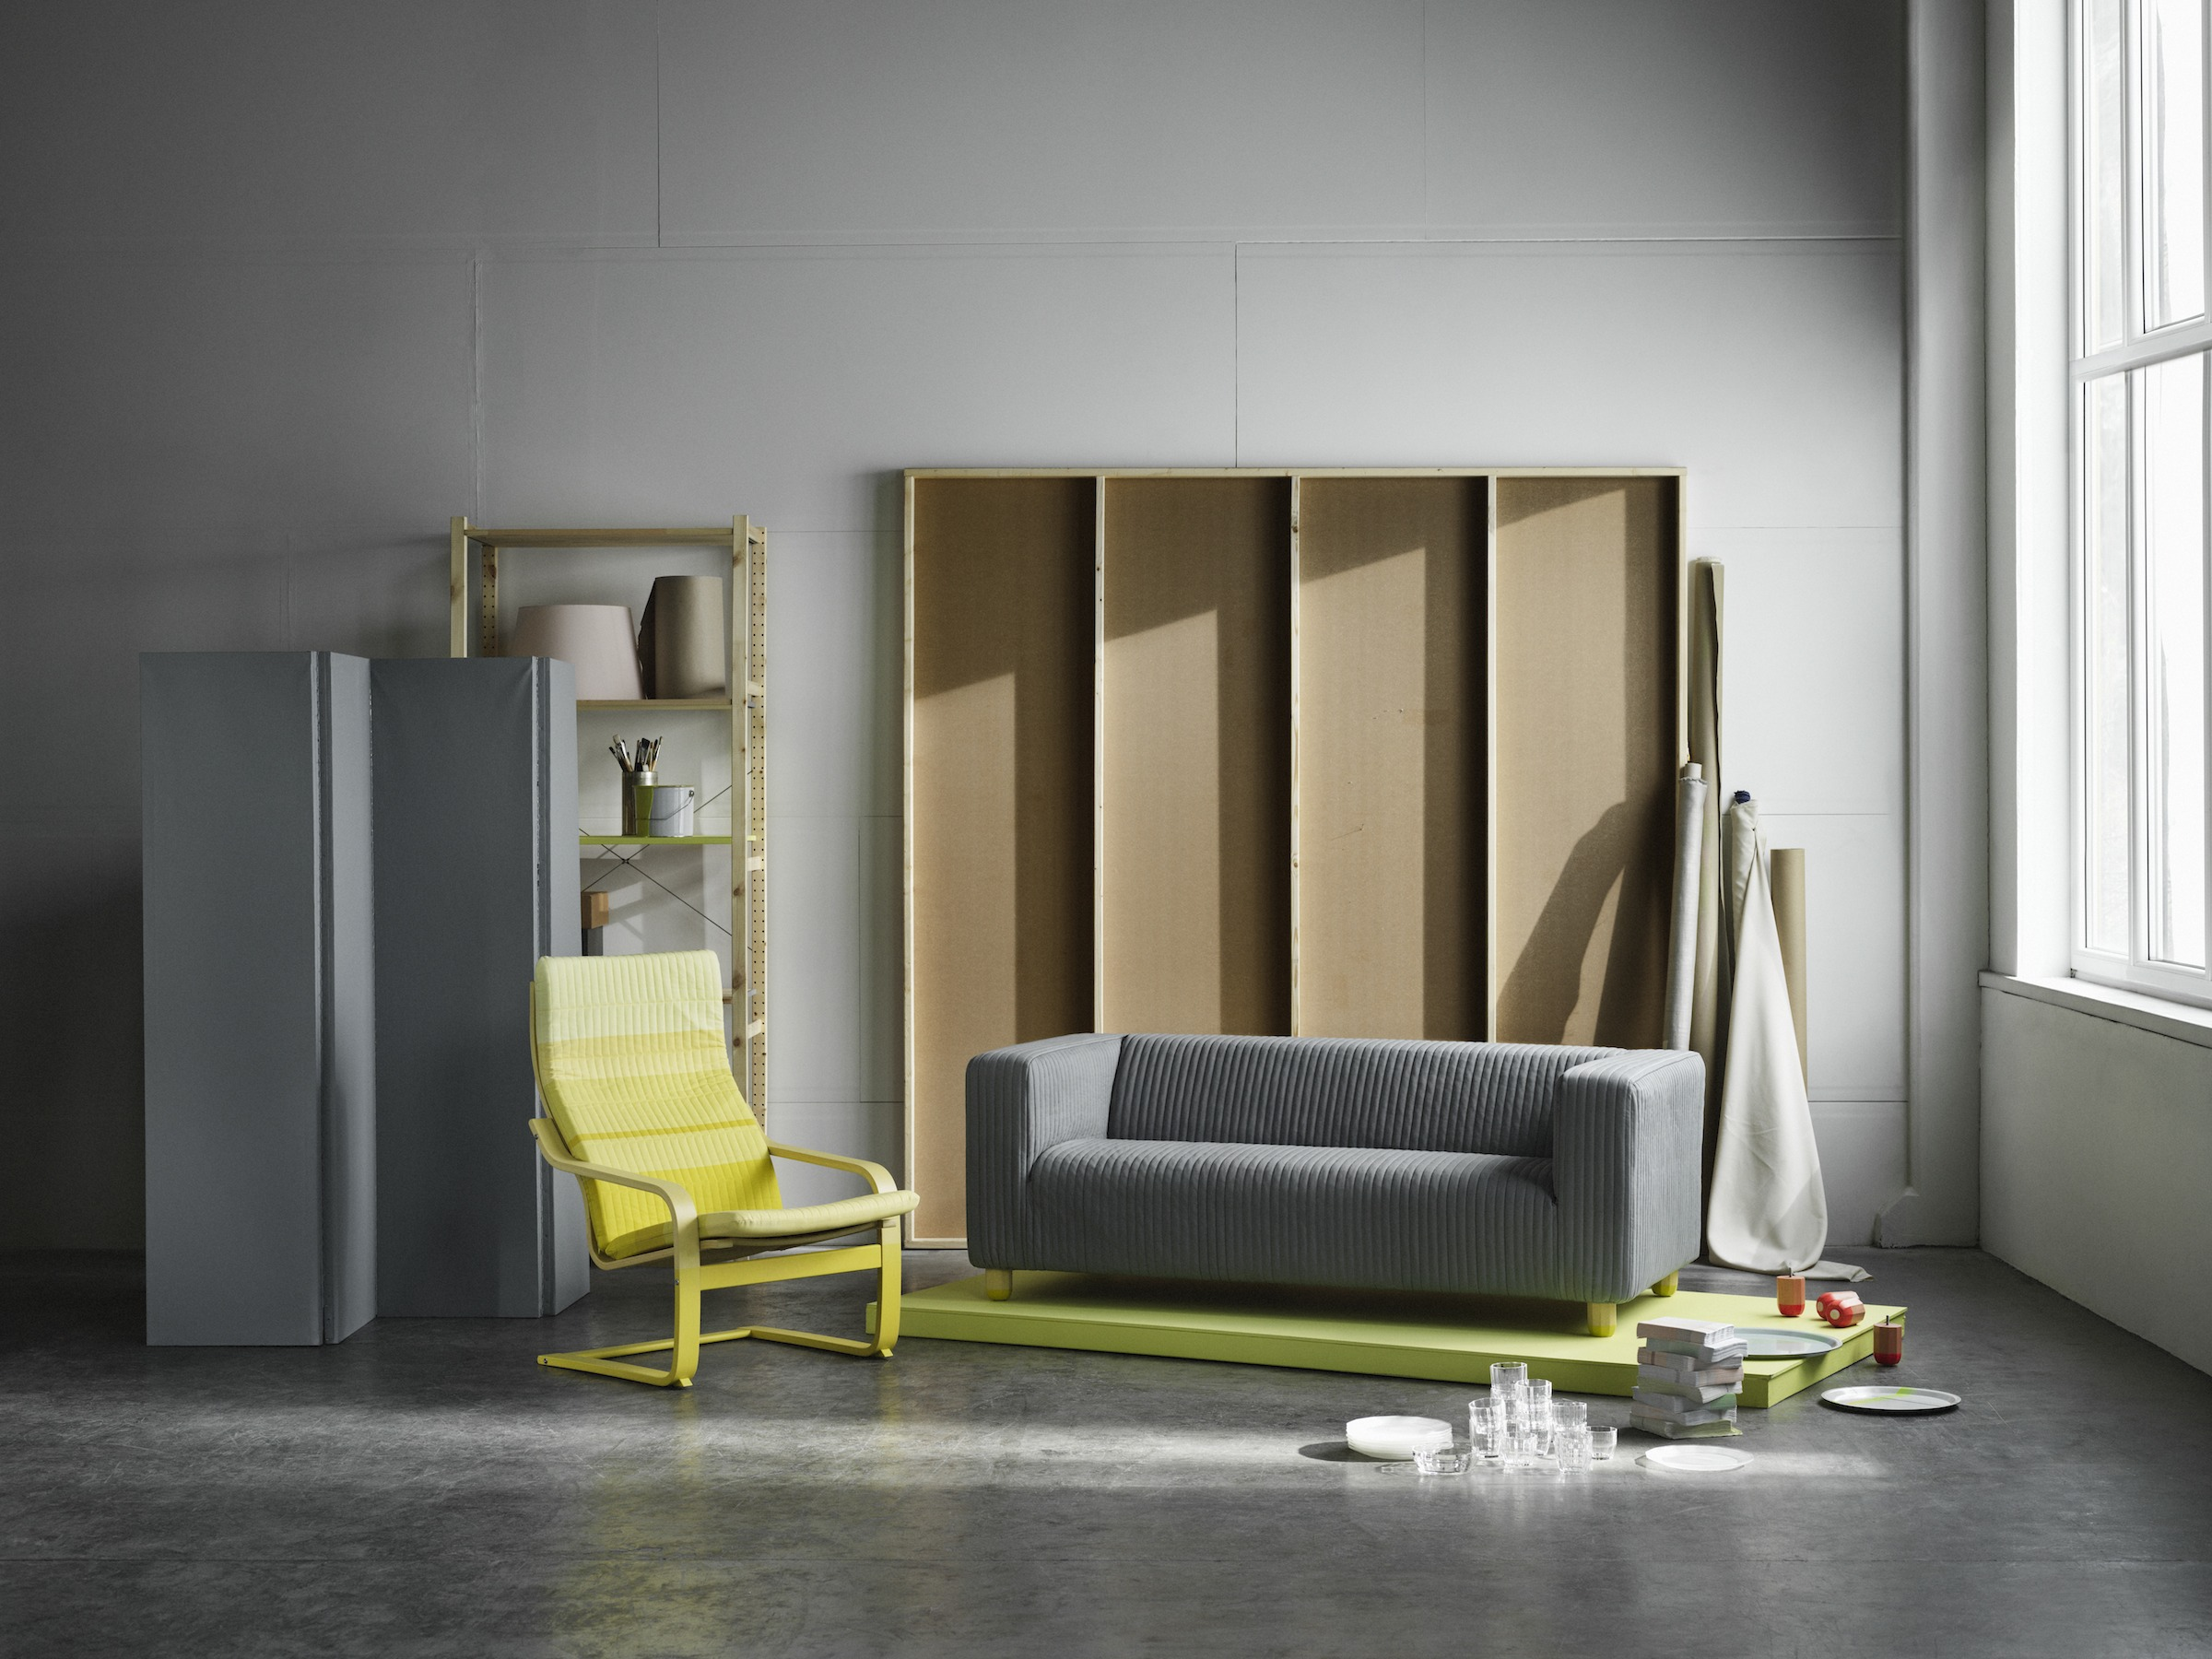 How to spot quality furniture at Ikea